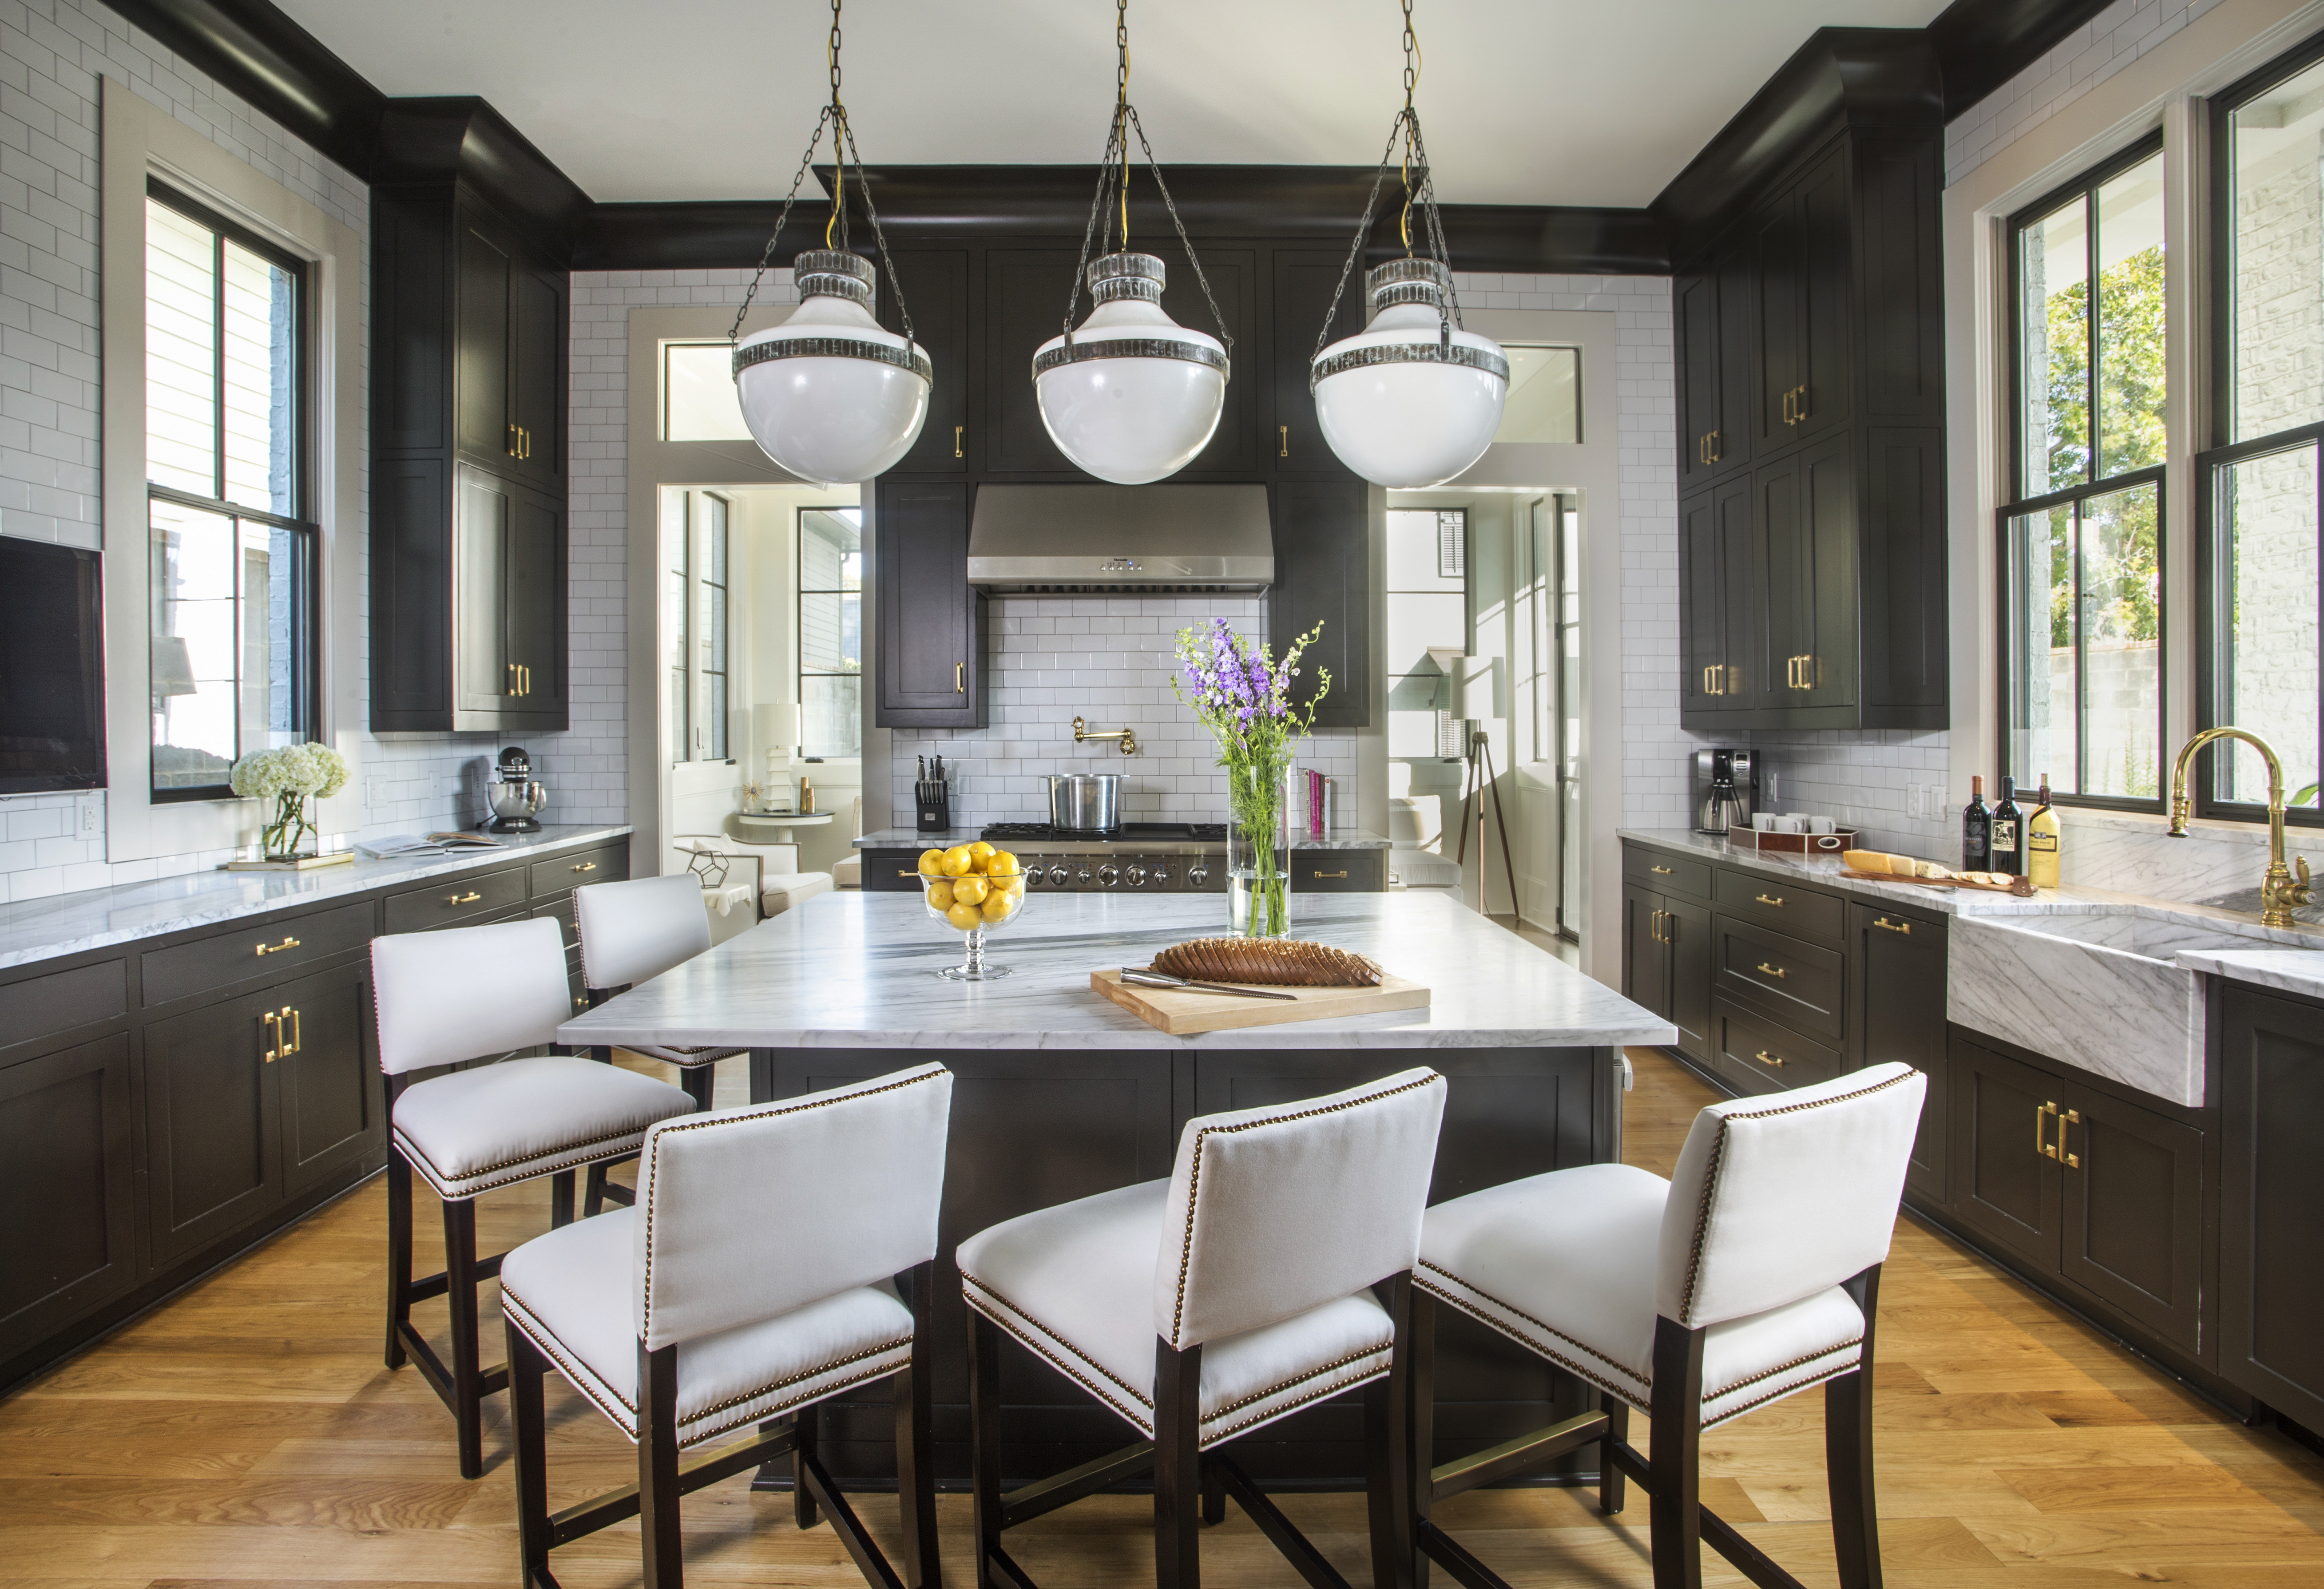 French Twist A New Texas Home Features A Modern Twist On New Orleans Architecture Inregister